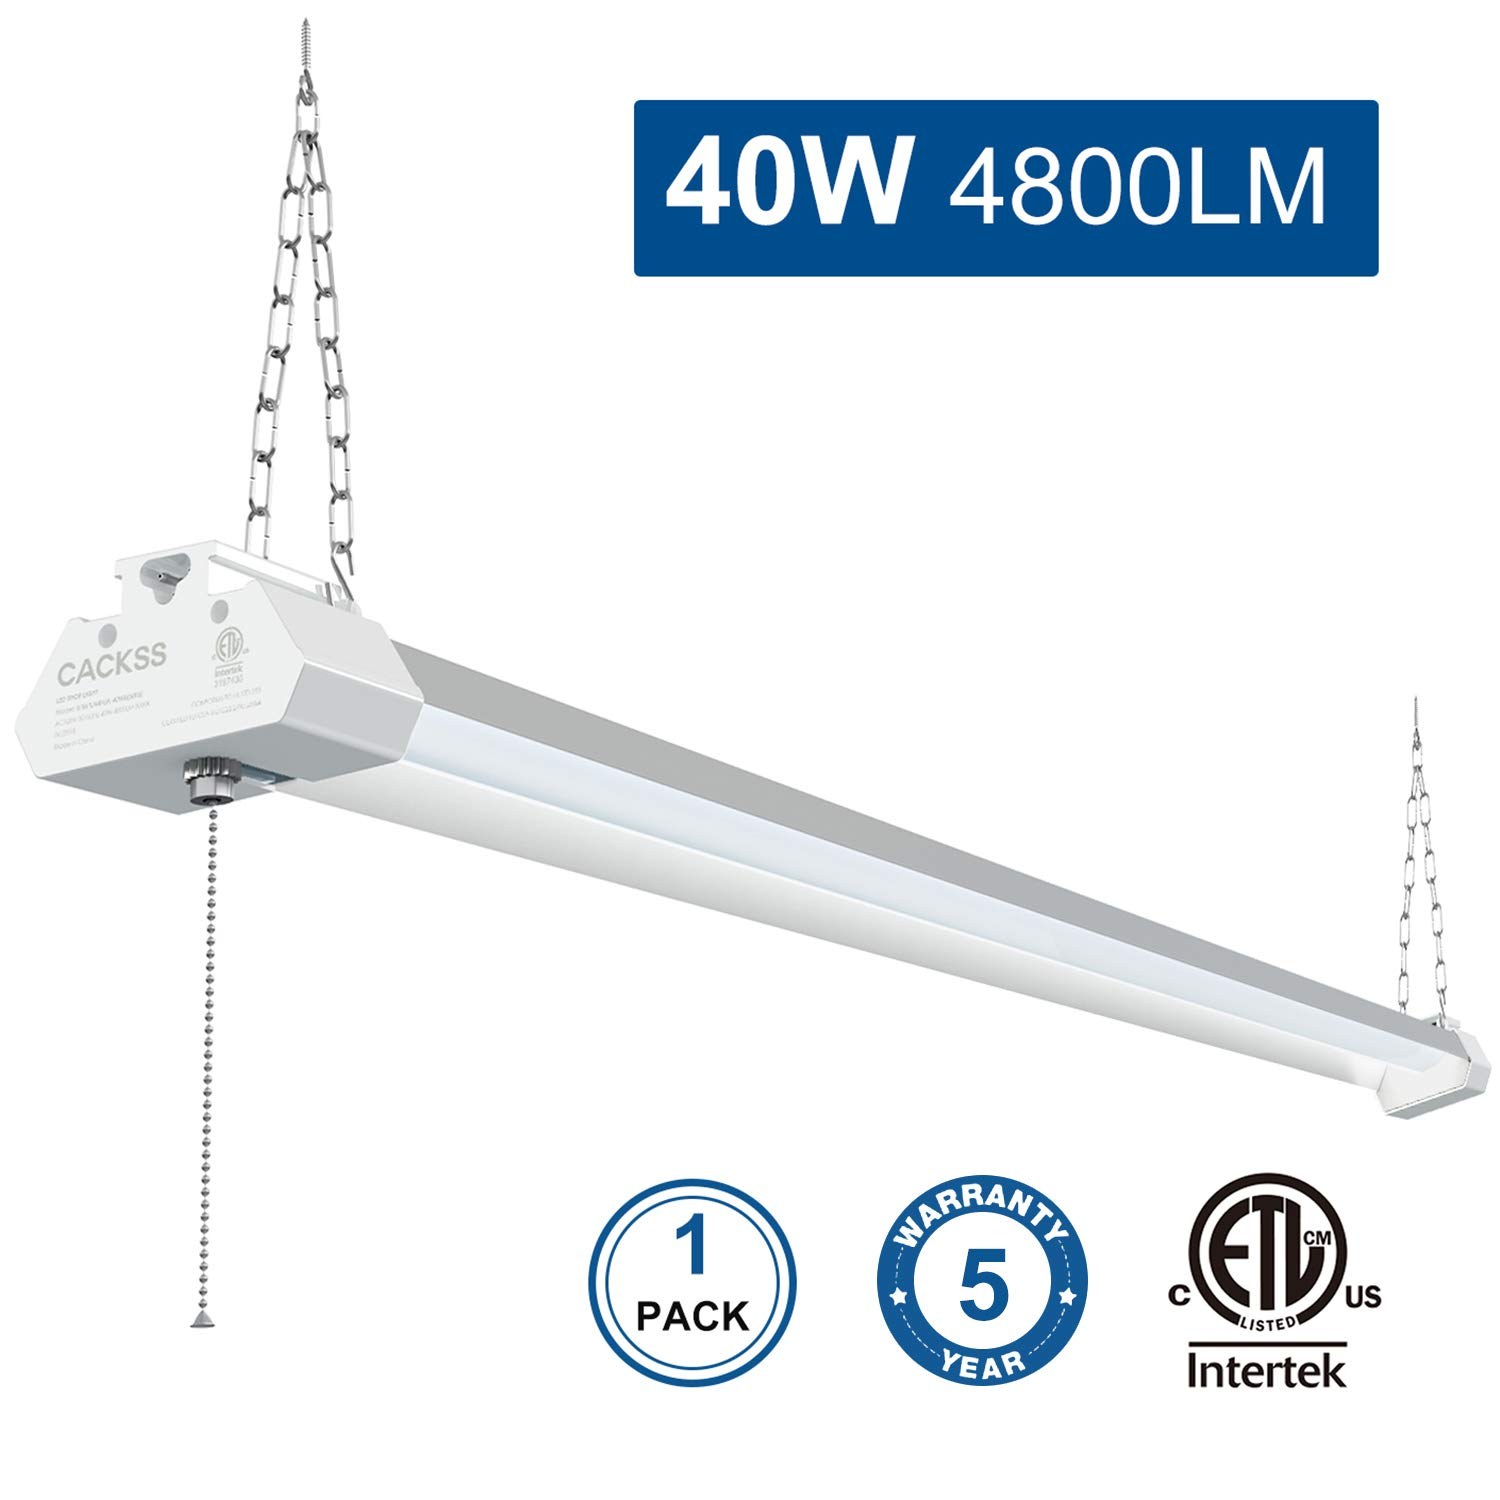 40W 4800LM LED Shop Light for Garage, 4FT Light Fixture with Pull Chain, 5000K Super Bright LED Utility Light with Frosted Cover, for Workshops Basement Storage Workbench, ETL Listed, Pack 1